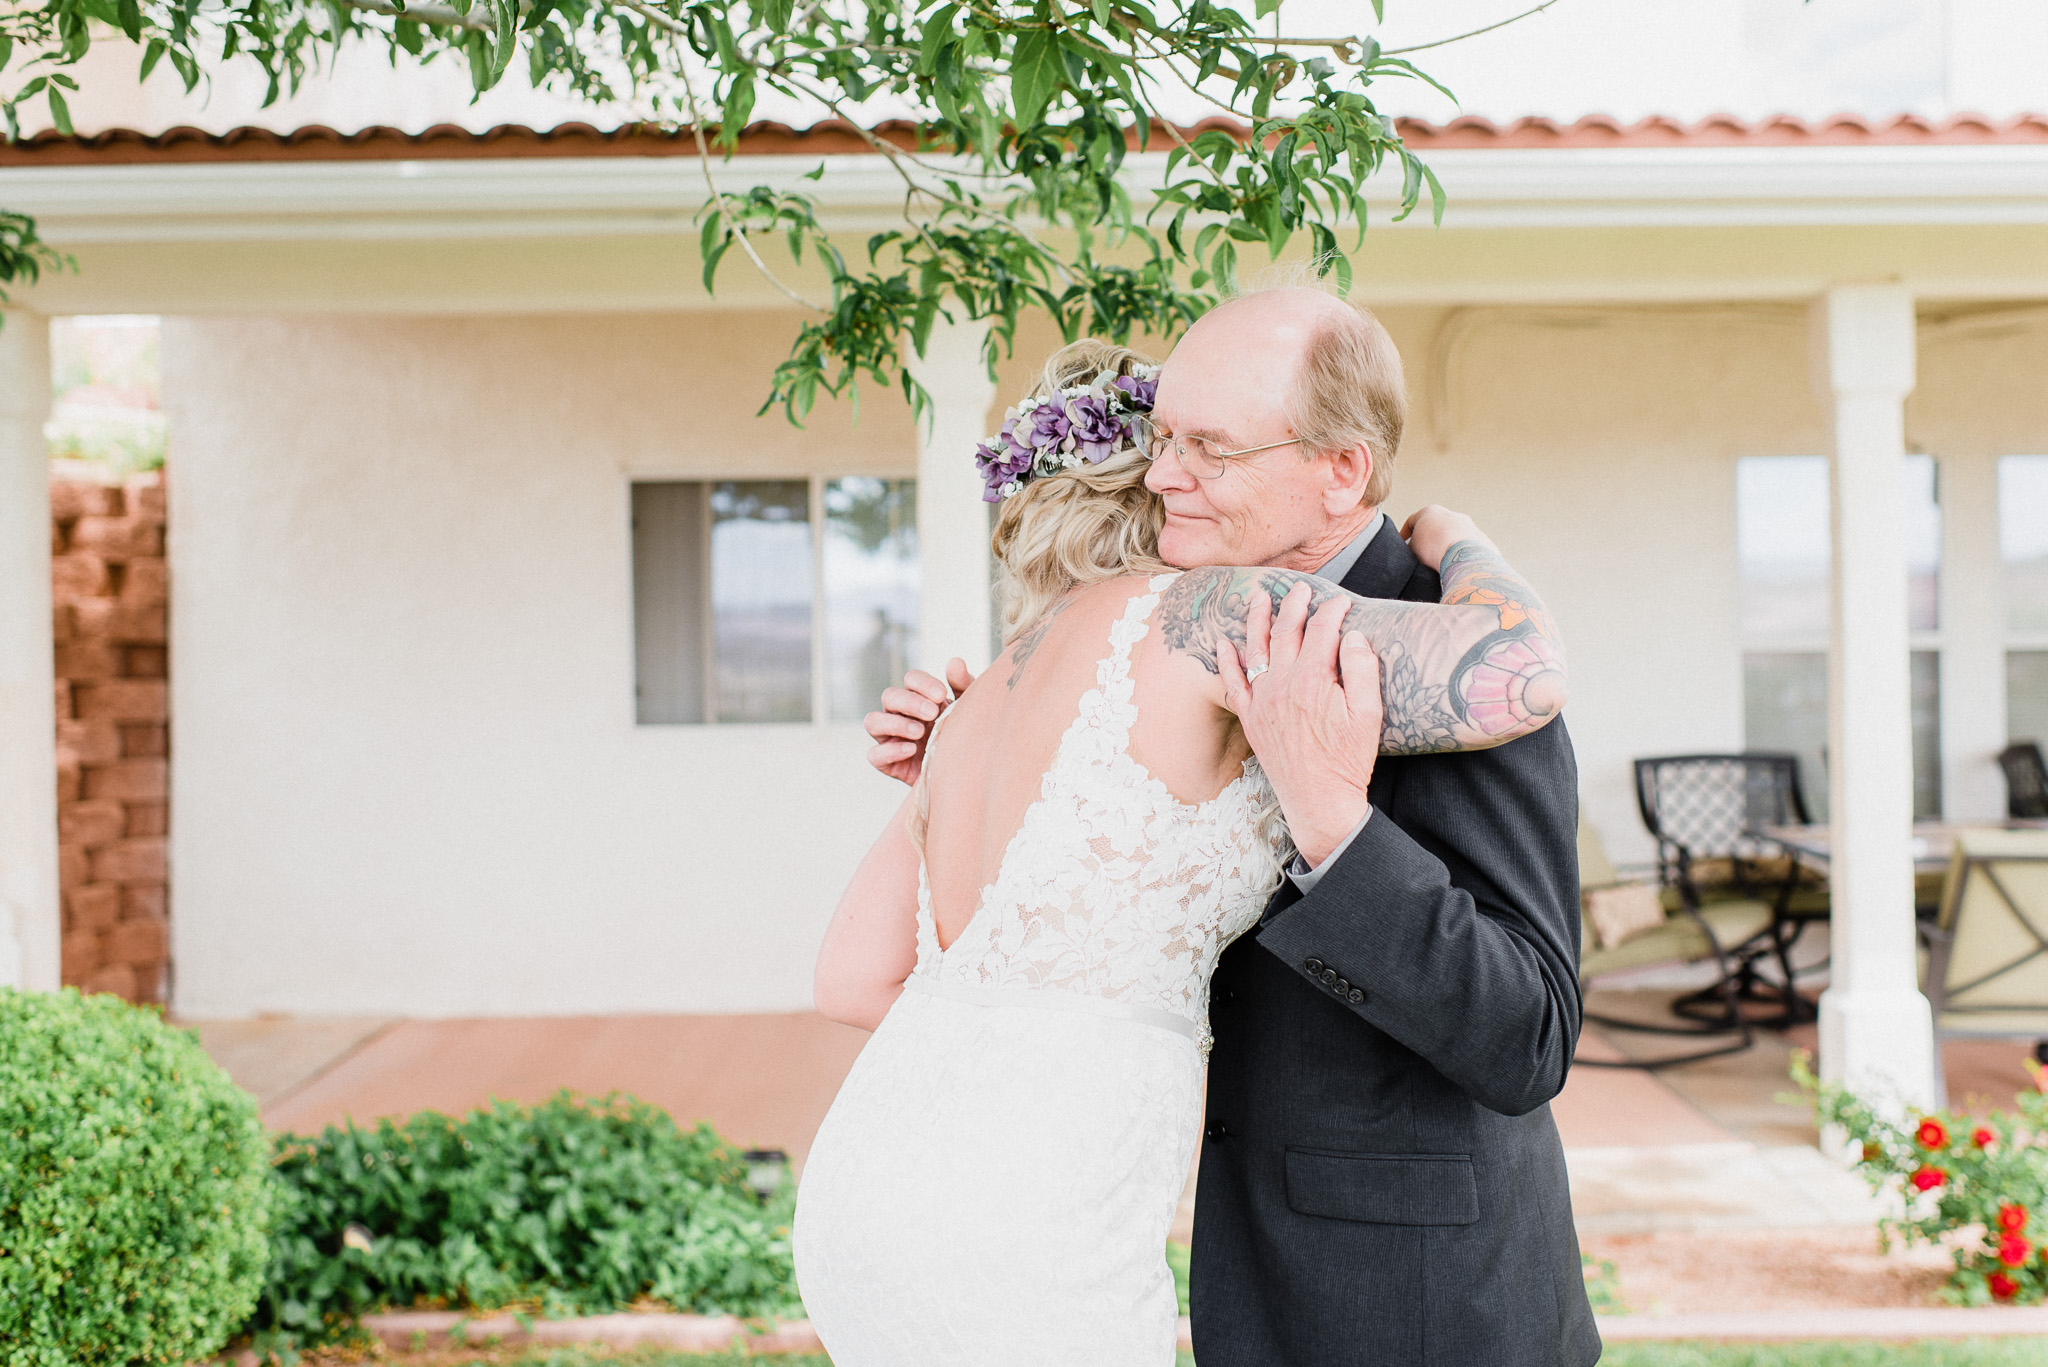 Emotional first look with bride's dad by Jenn Kavanagh Photography